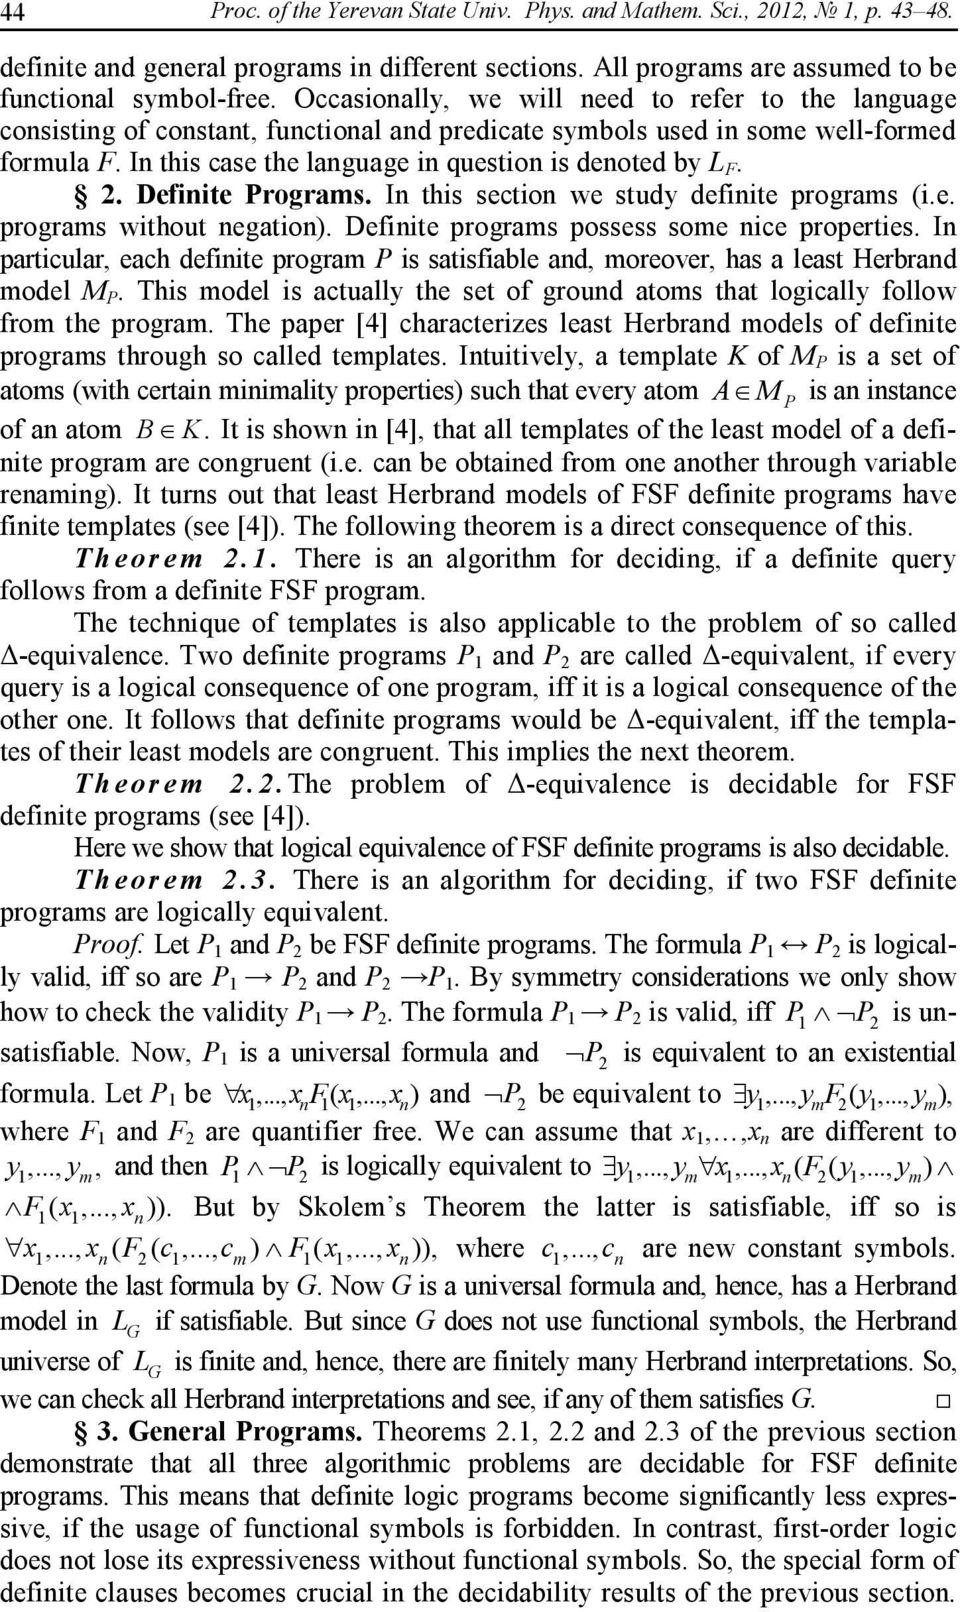 2. Definite Programs. In this section we study definite programs (i.e. programs without negation). Definite programs possess some nice properties.